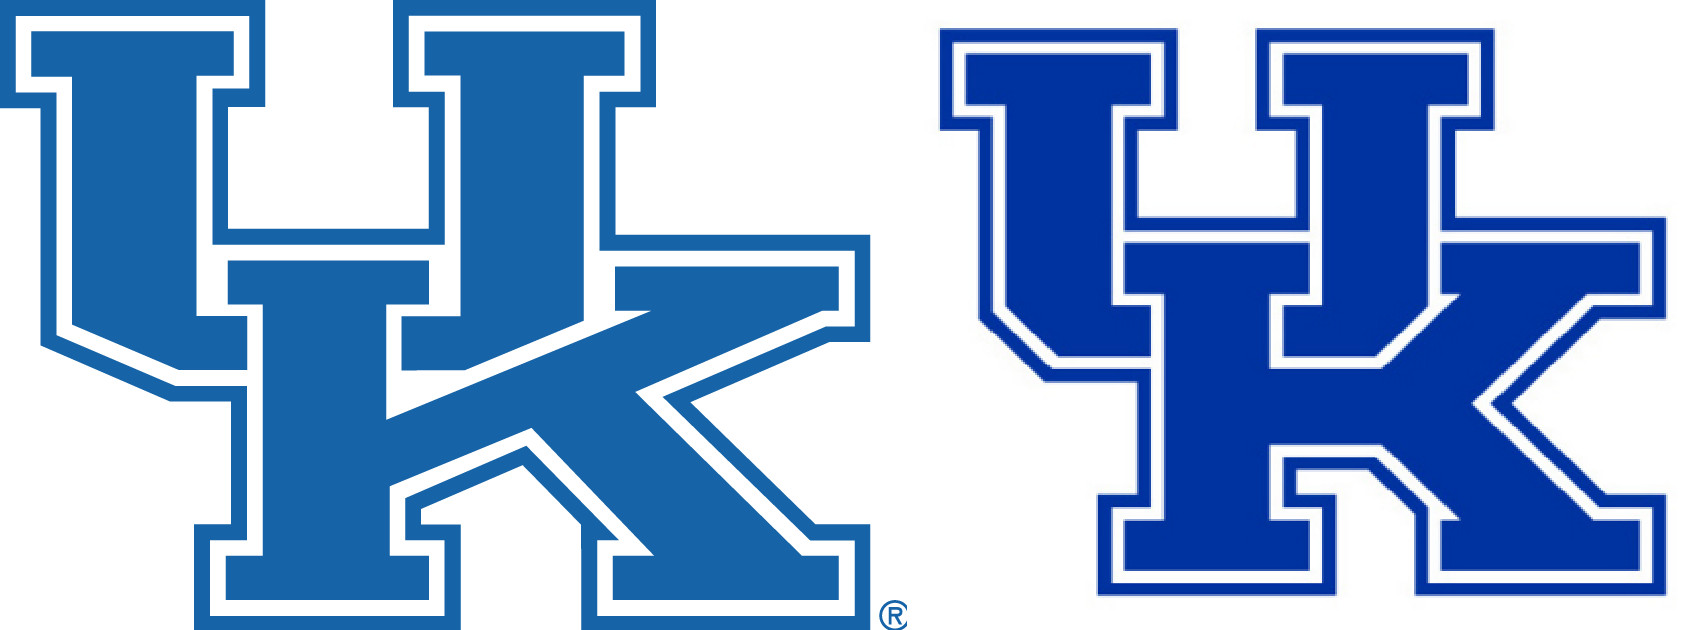 Uk Basketball Logo: Kentucky Basketball And Football Getting New Uniforms